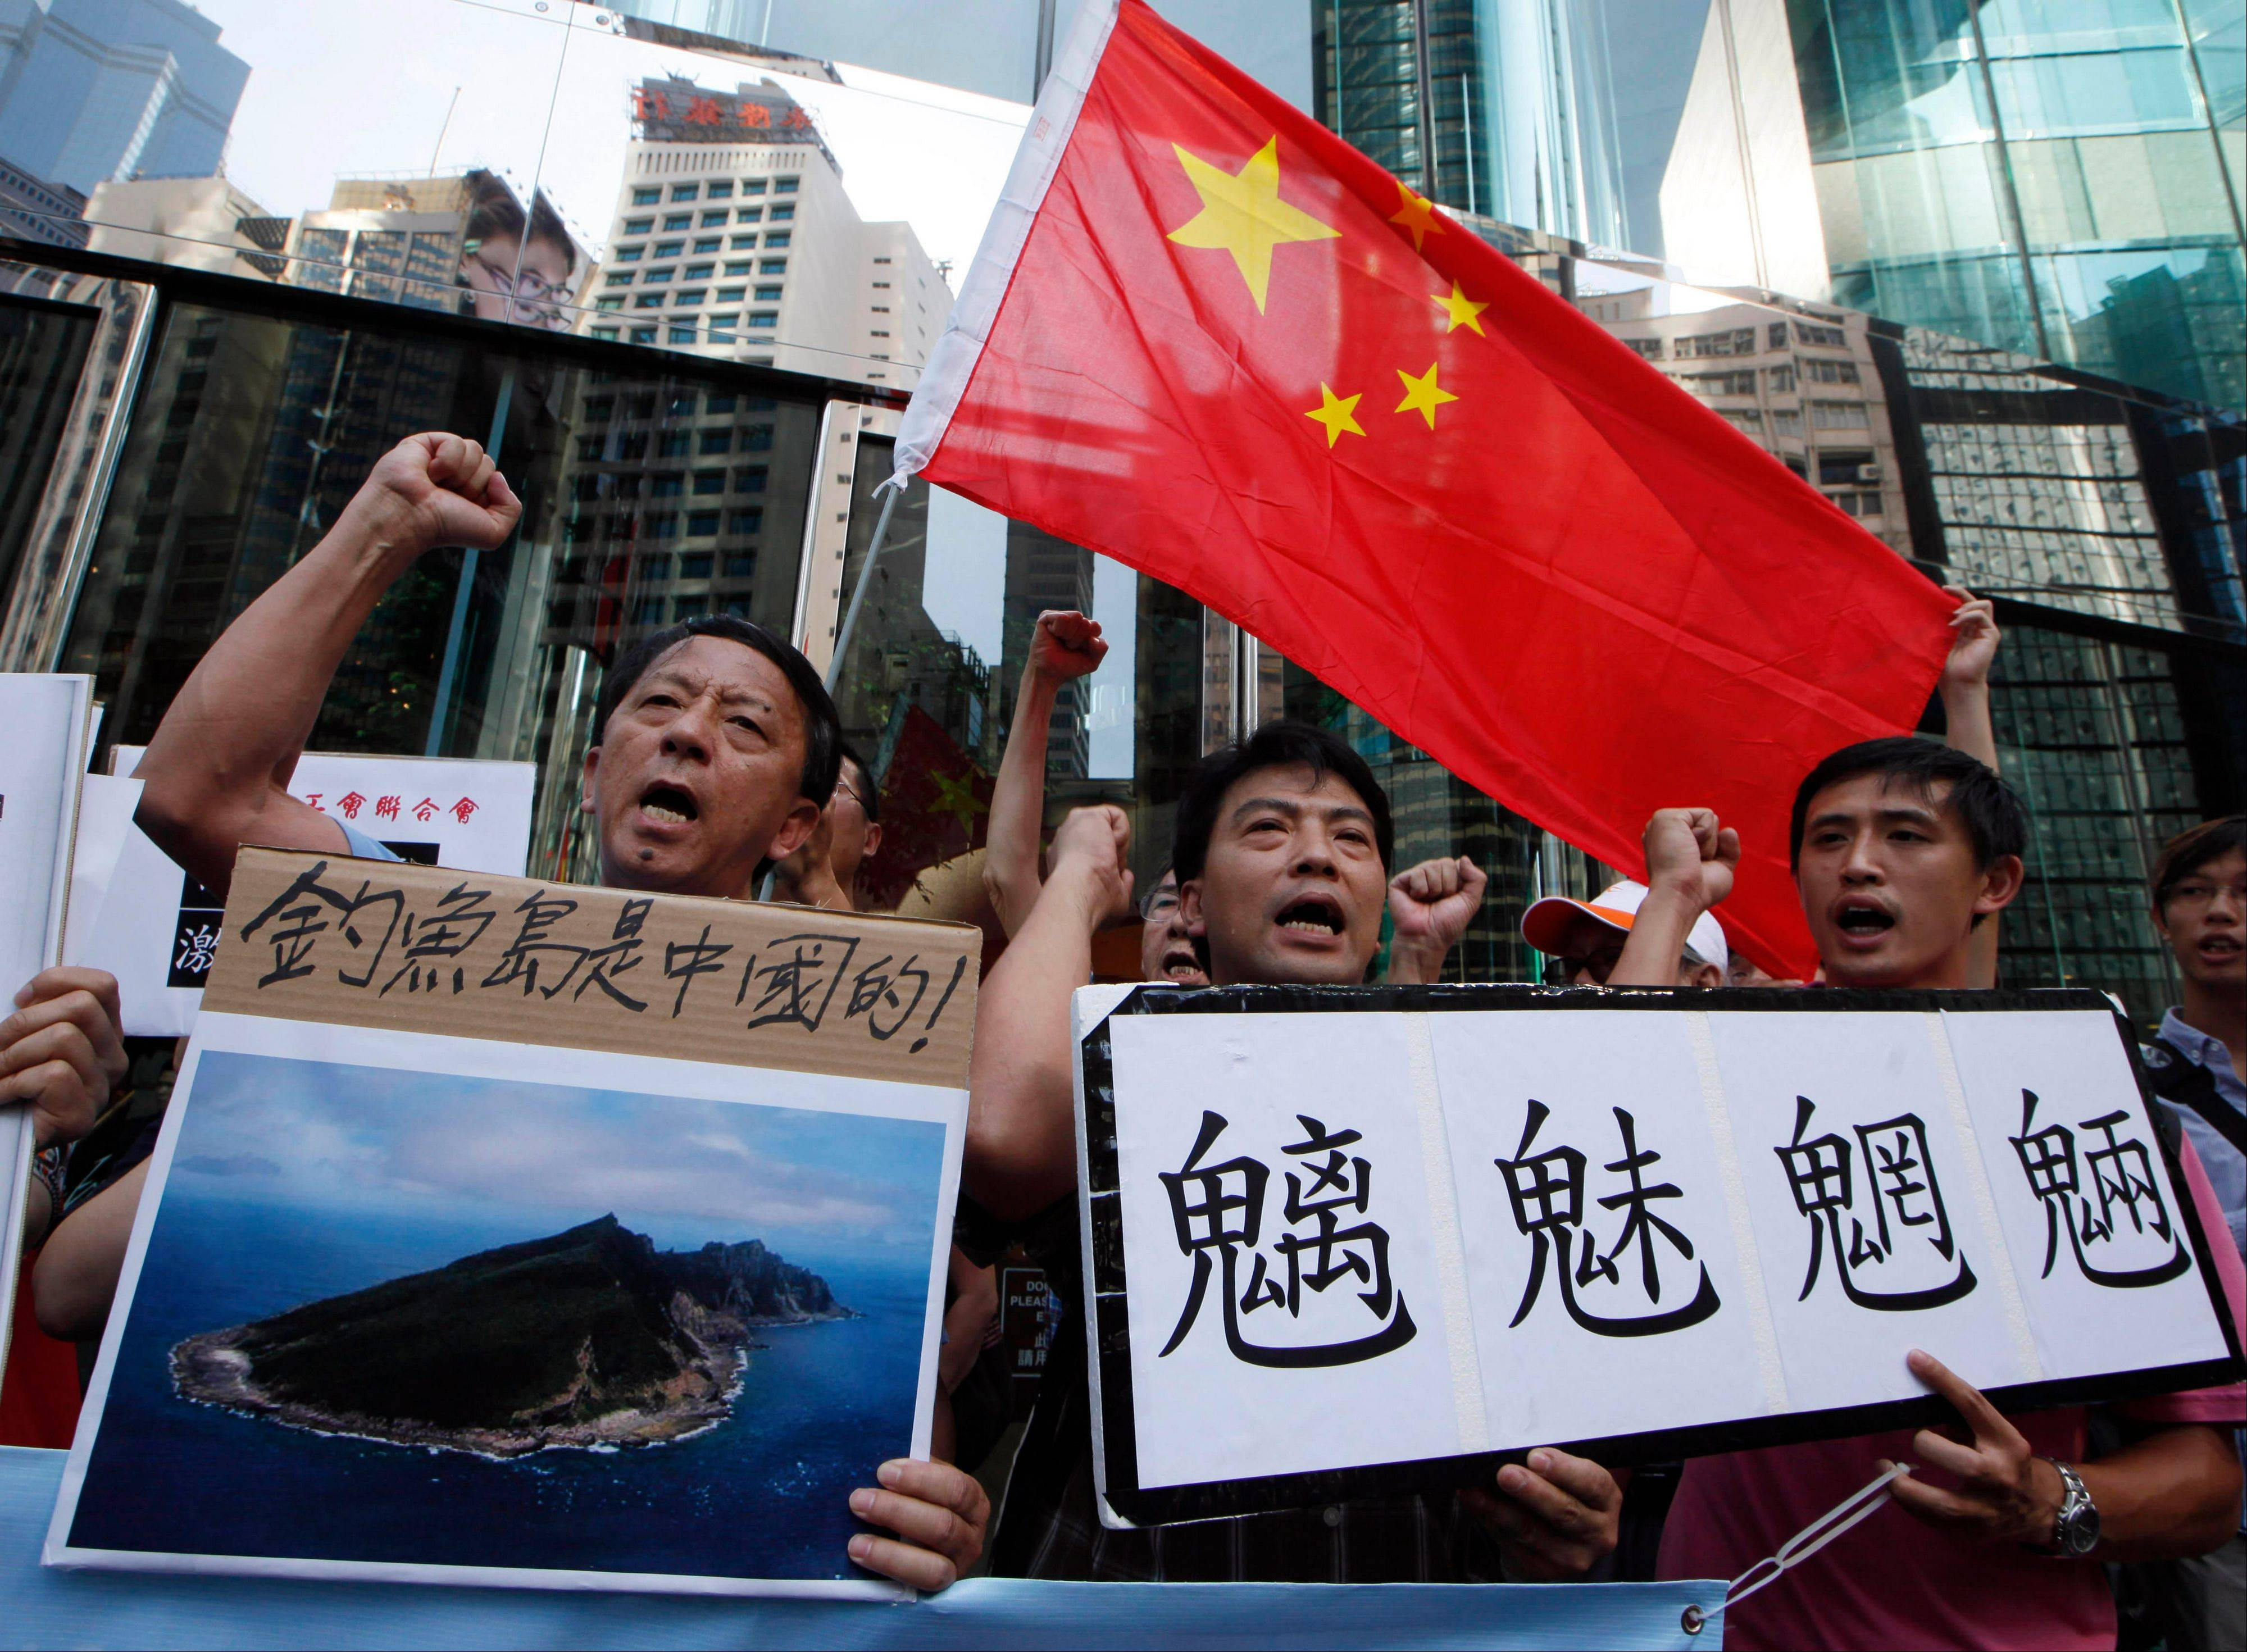 "Protesters demonstrating against Japan's claim to disputed islands chant slogans as they hold a picture of the rocky islands, known as Diaoyu to Chinese and Senkaku to Japanese, reading ""Diaoyu belongs to China"" as others carry a Chinese national flag and a sign reading ""evil spirits of mountains and rivers"" during a rally outside the Japanese Consulate General in Hong Kong Tuesday, Sept. 11, 2012."